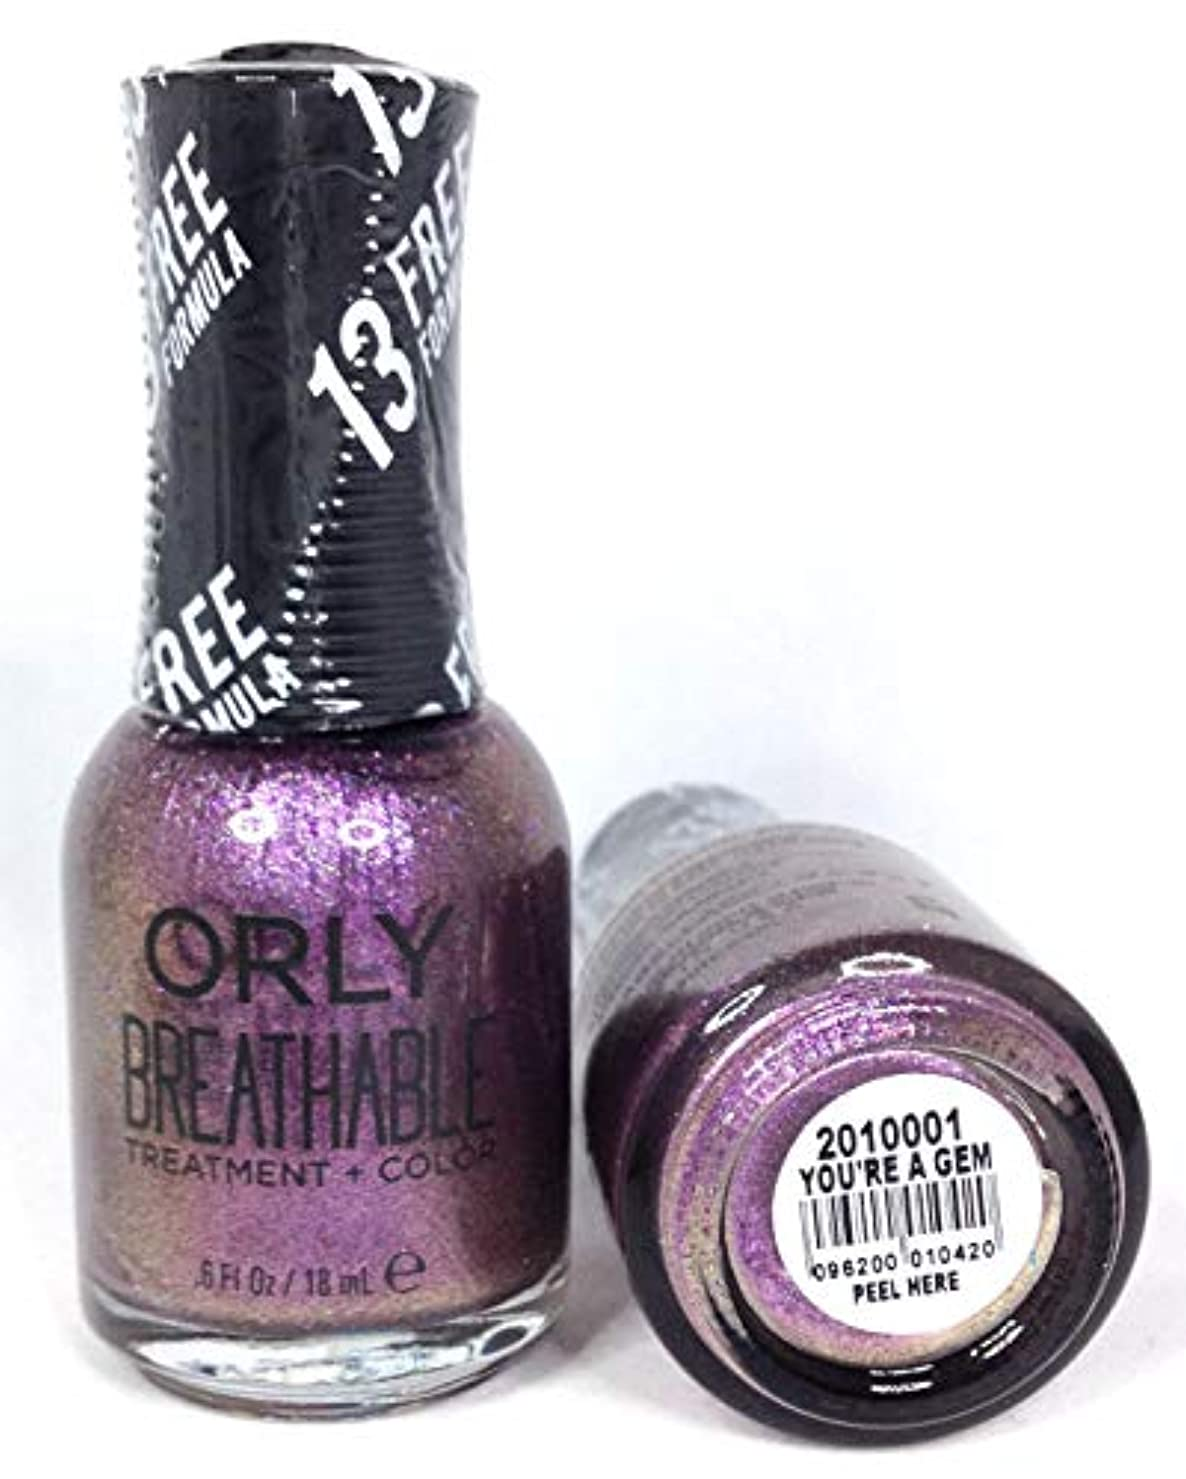 ORLY Breathable Lacquer - Treatment+Color - You're A Gem - 18 mL / 0.6 oz